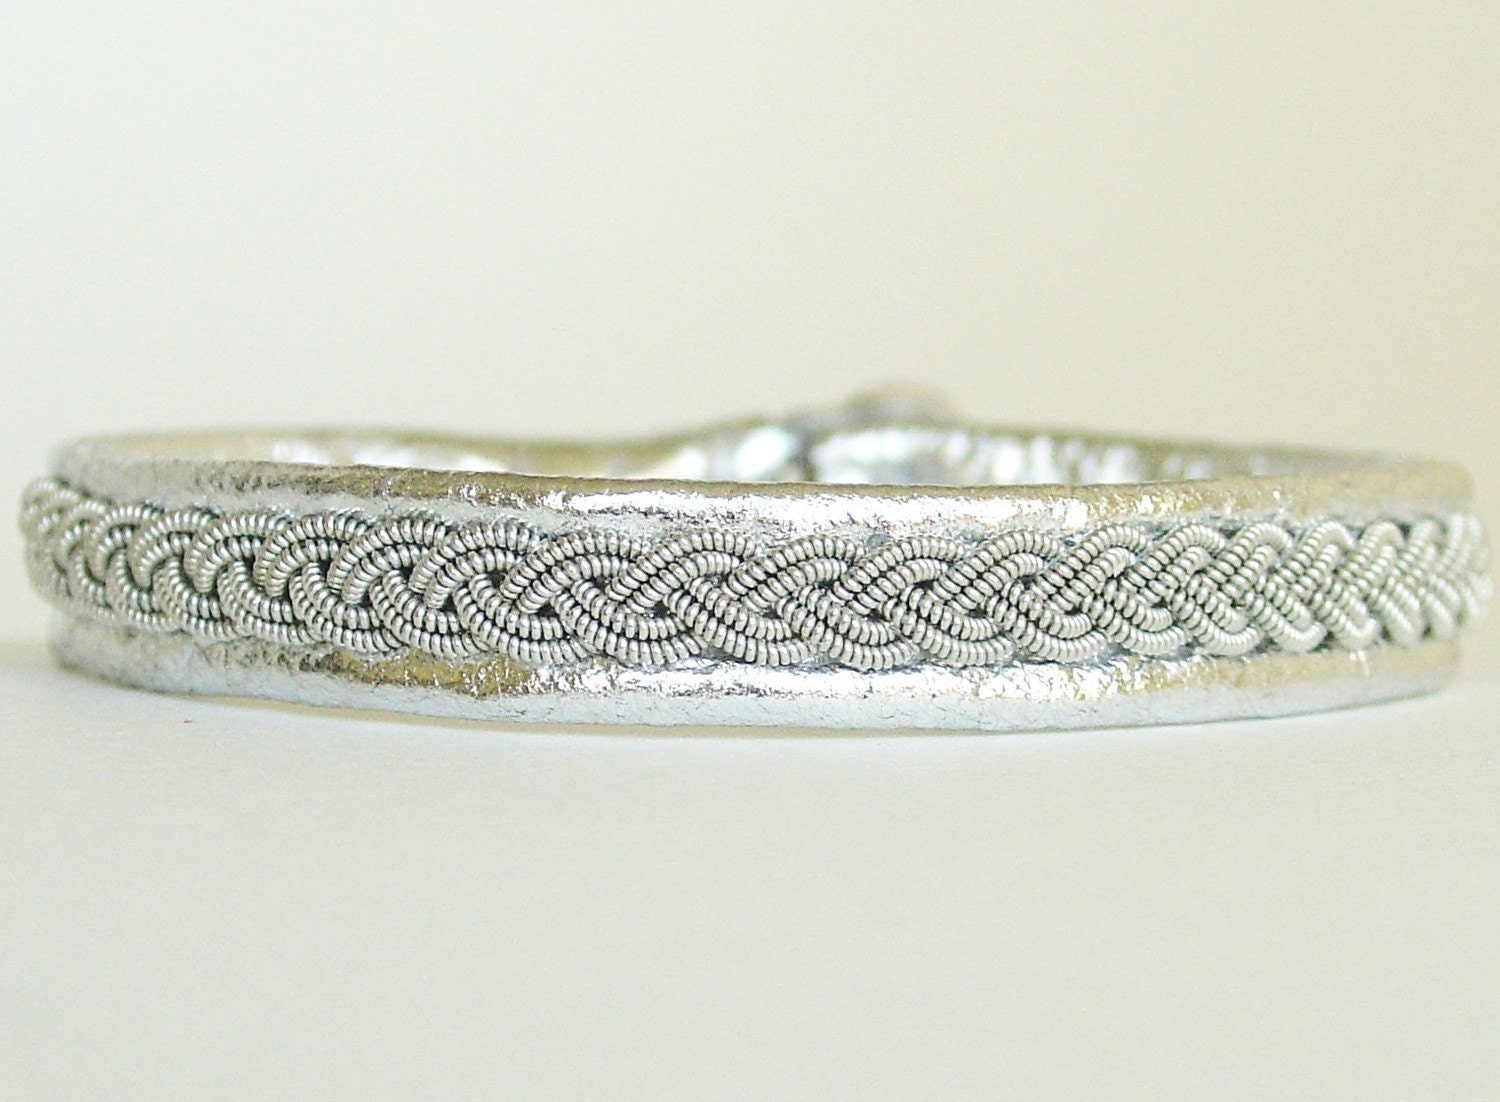 NEW Silver Lambskin Lapland Bracelet, Antler Button, Pewter and Silver Braid, WOMEN'S LARGE, 3/8 Inch Wide, B12 Sami